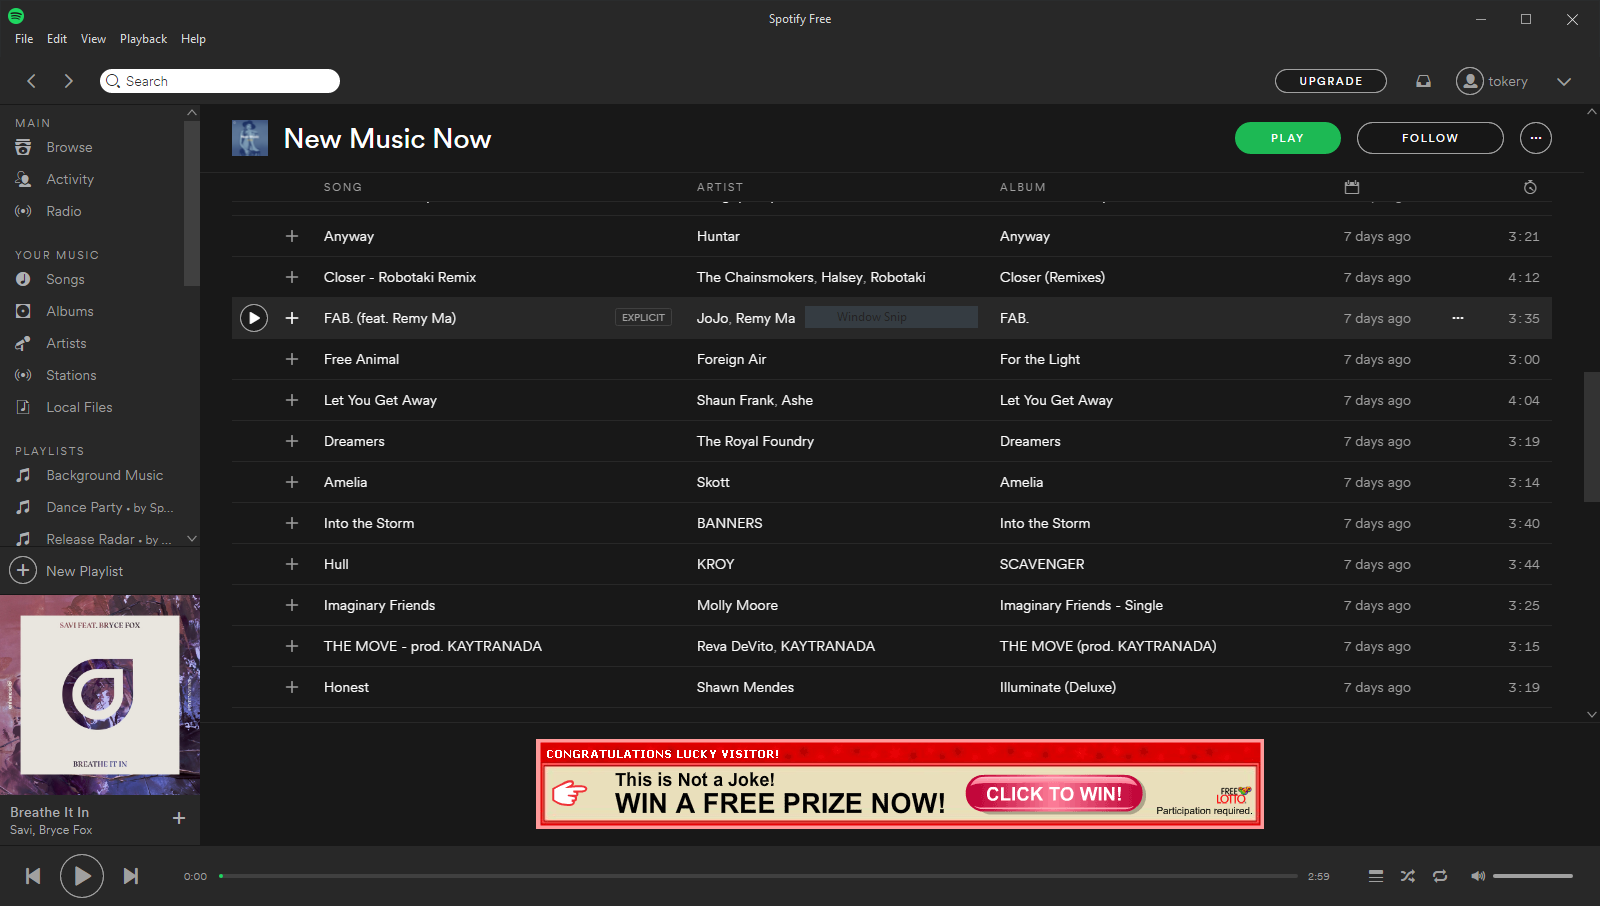 Spotify Free (ads) causes browser to launch on malware